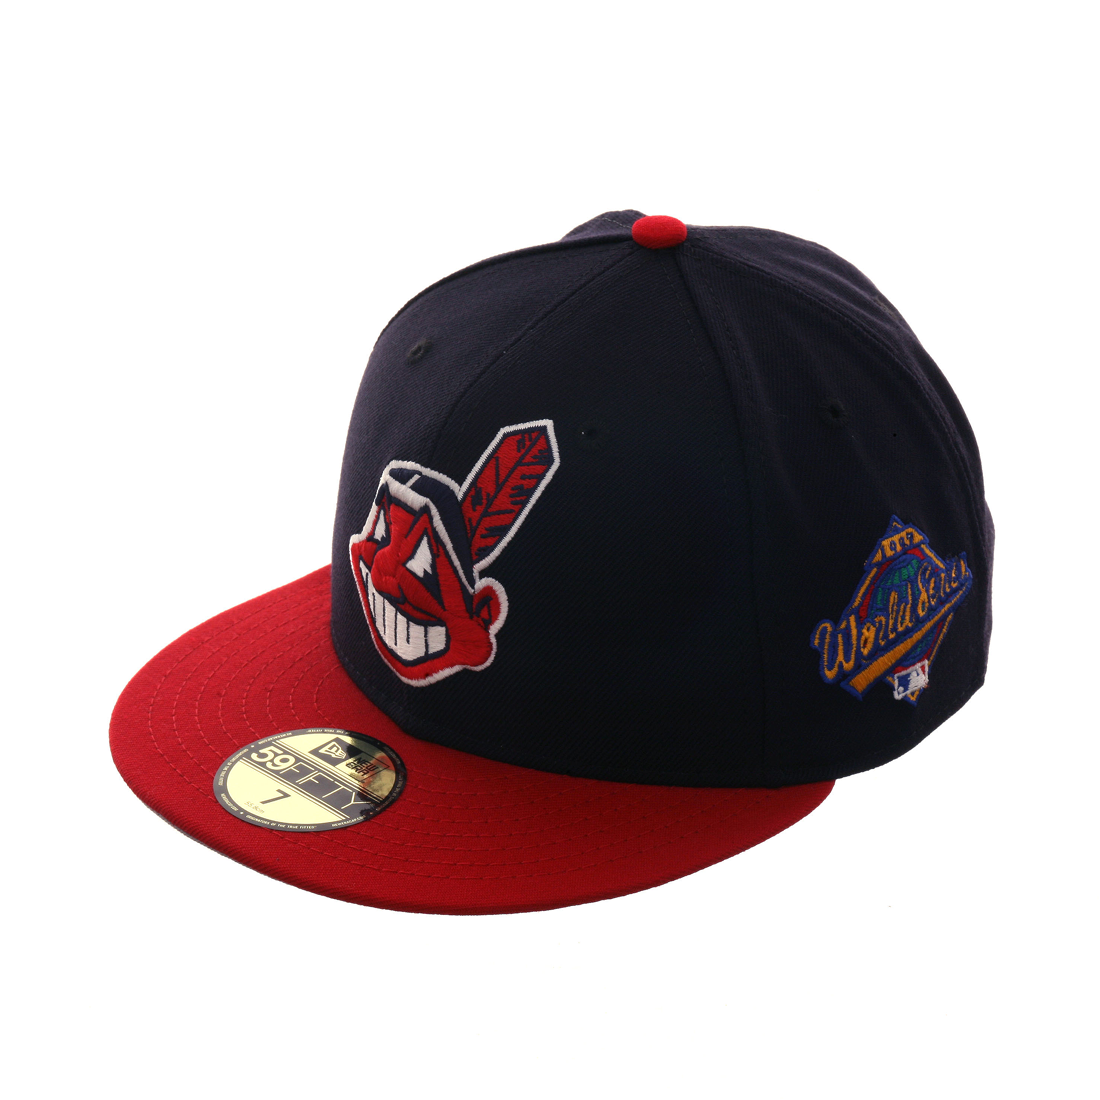 fed4bde818f891 New Era 59Fifty Cleveland Indians 1997 World Series Fitted Hat - 2T Navy,  Red, $ 40.00